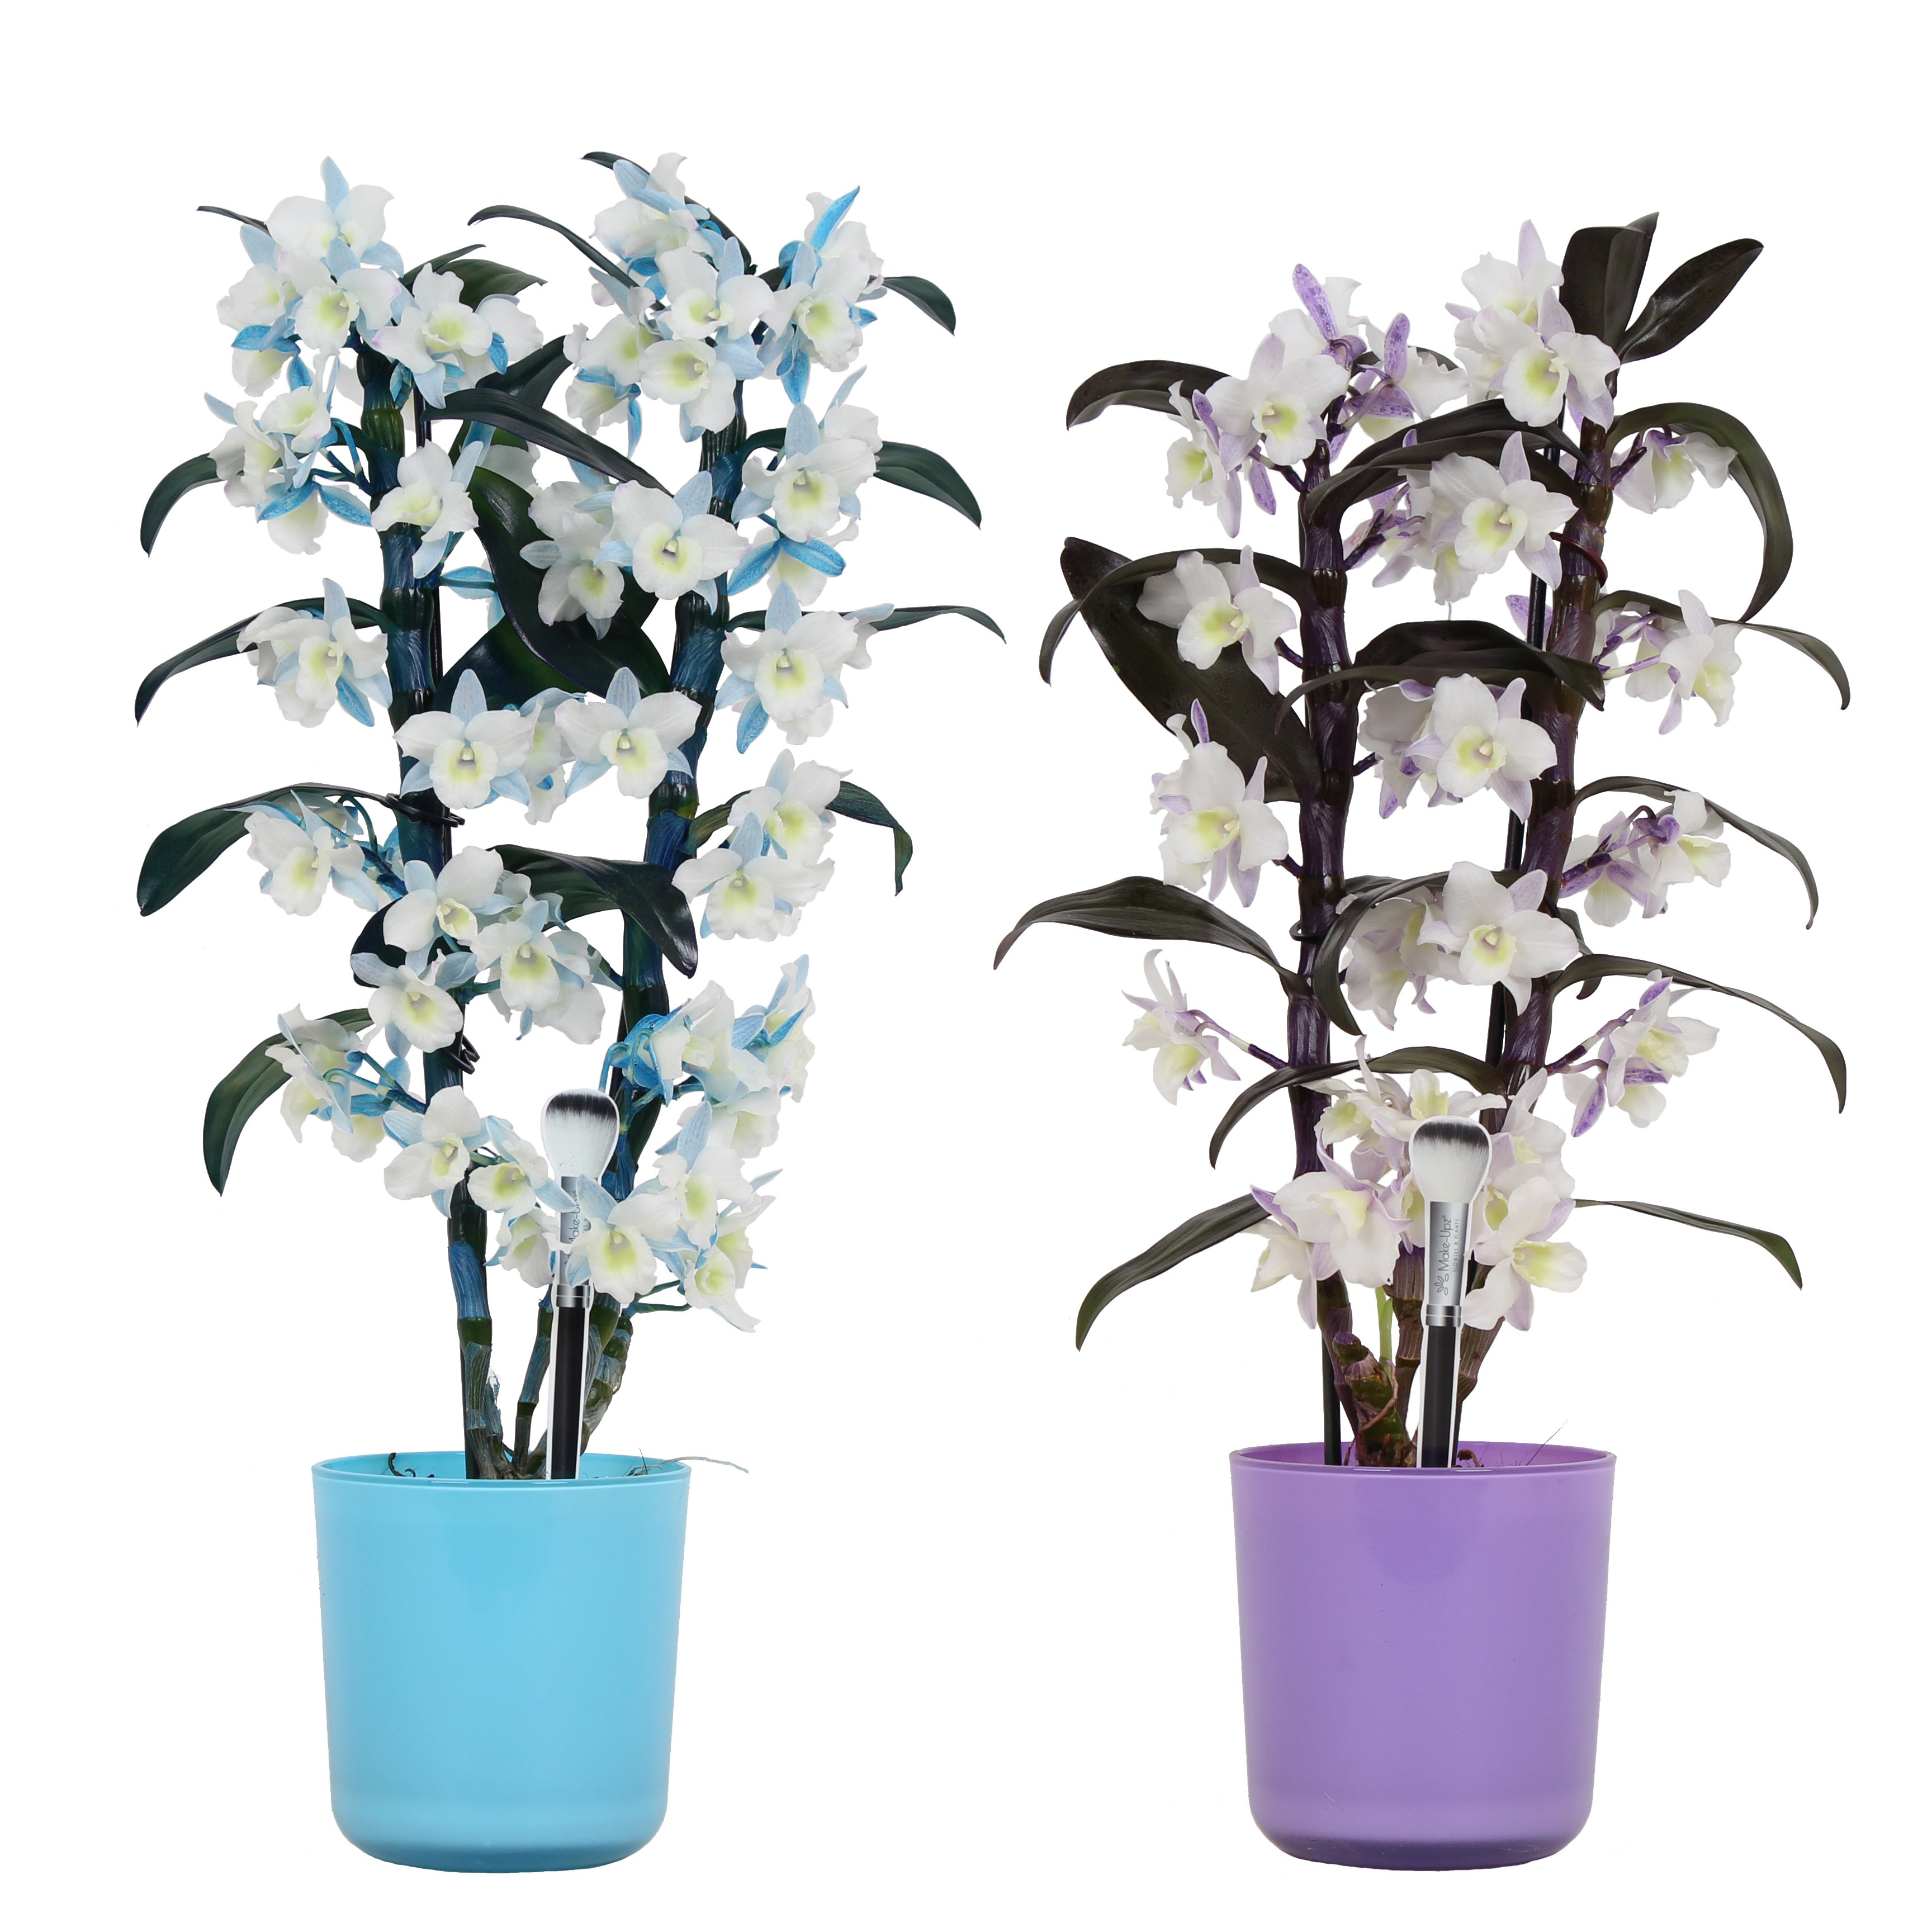 Orchids – 2 × Bamboo Orchid – Height: 50 cm, 2 stems, purple and white flowers